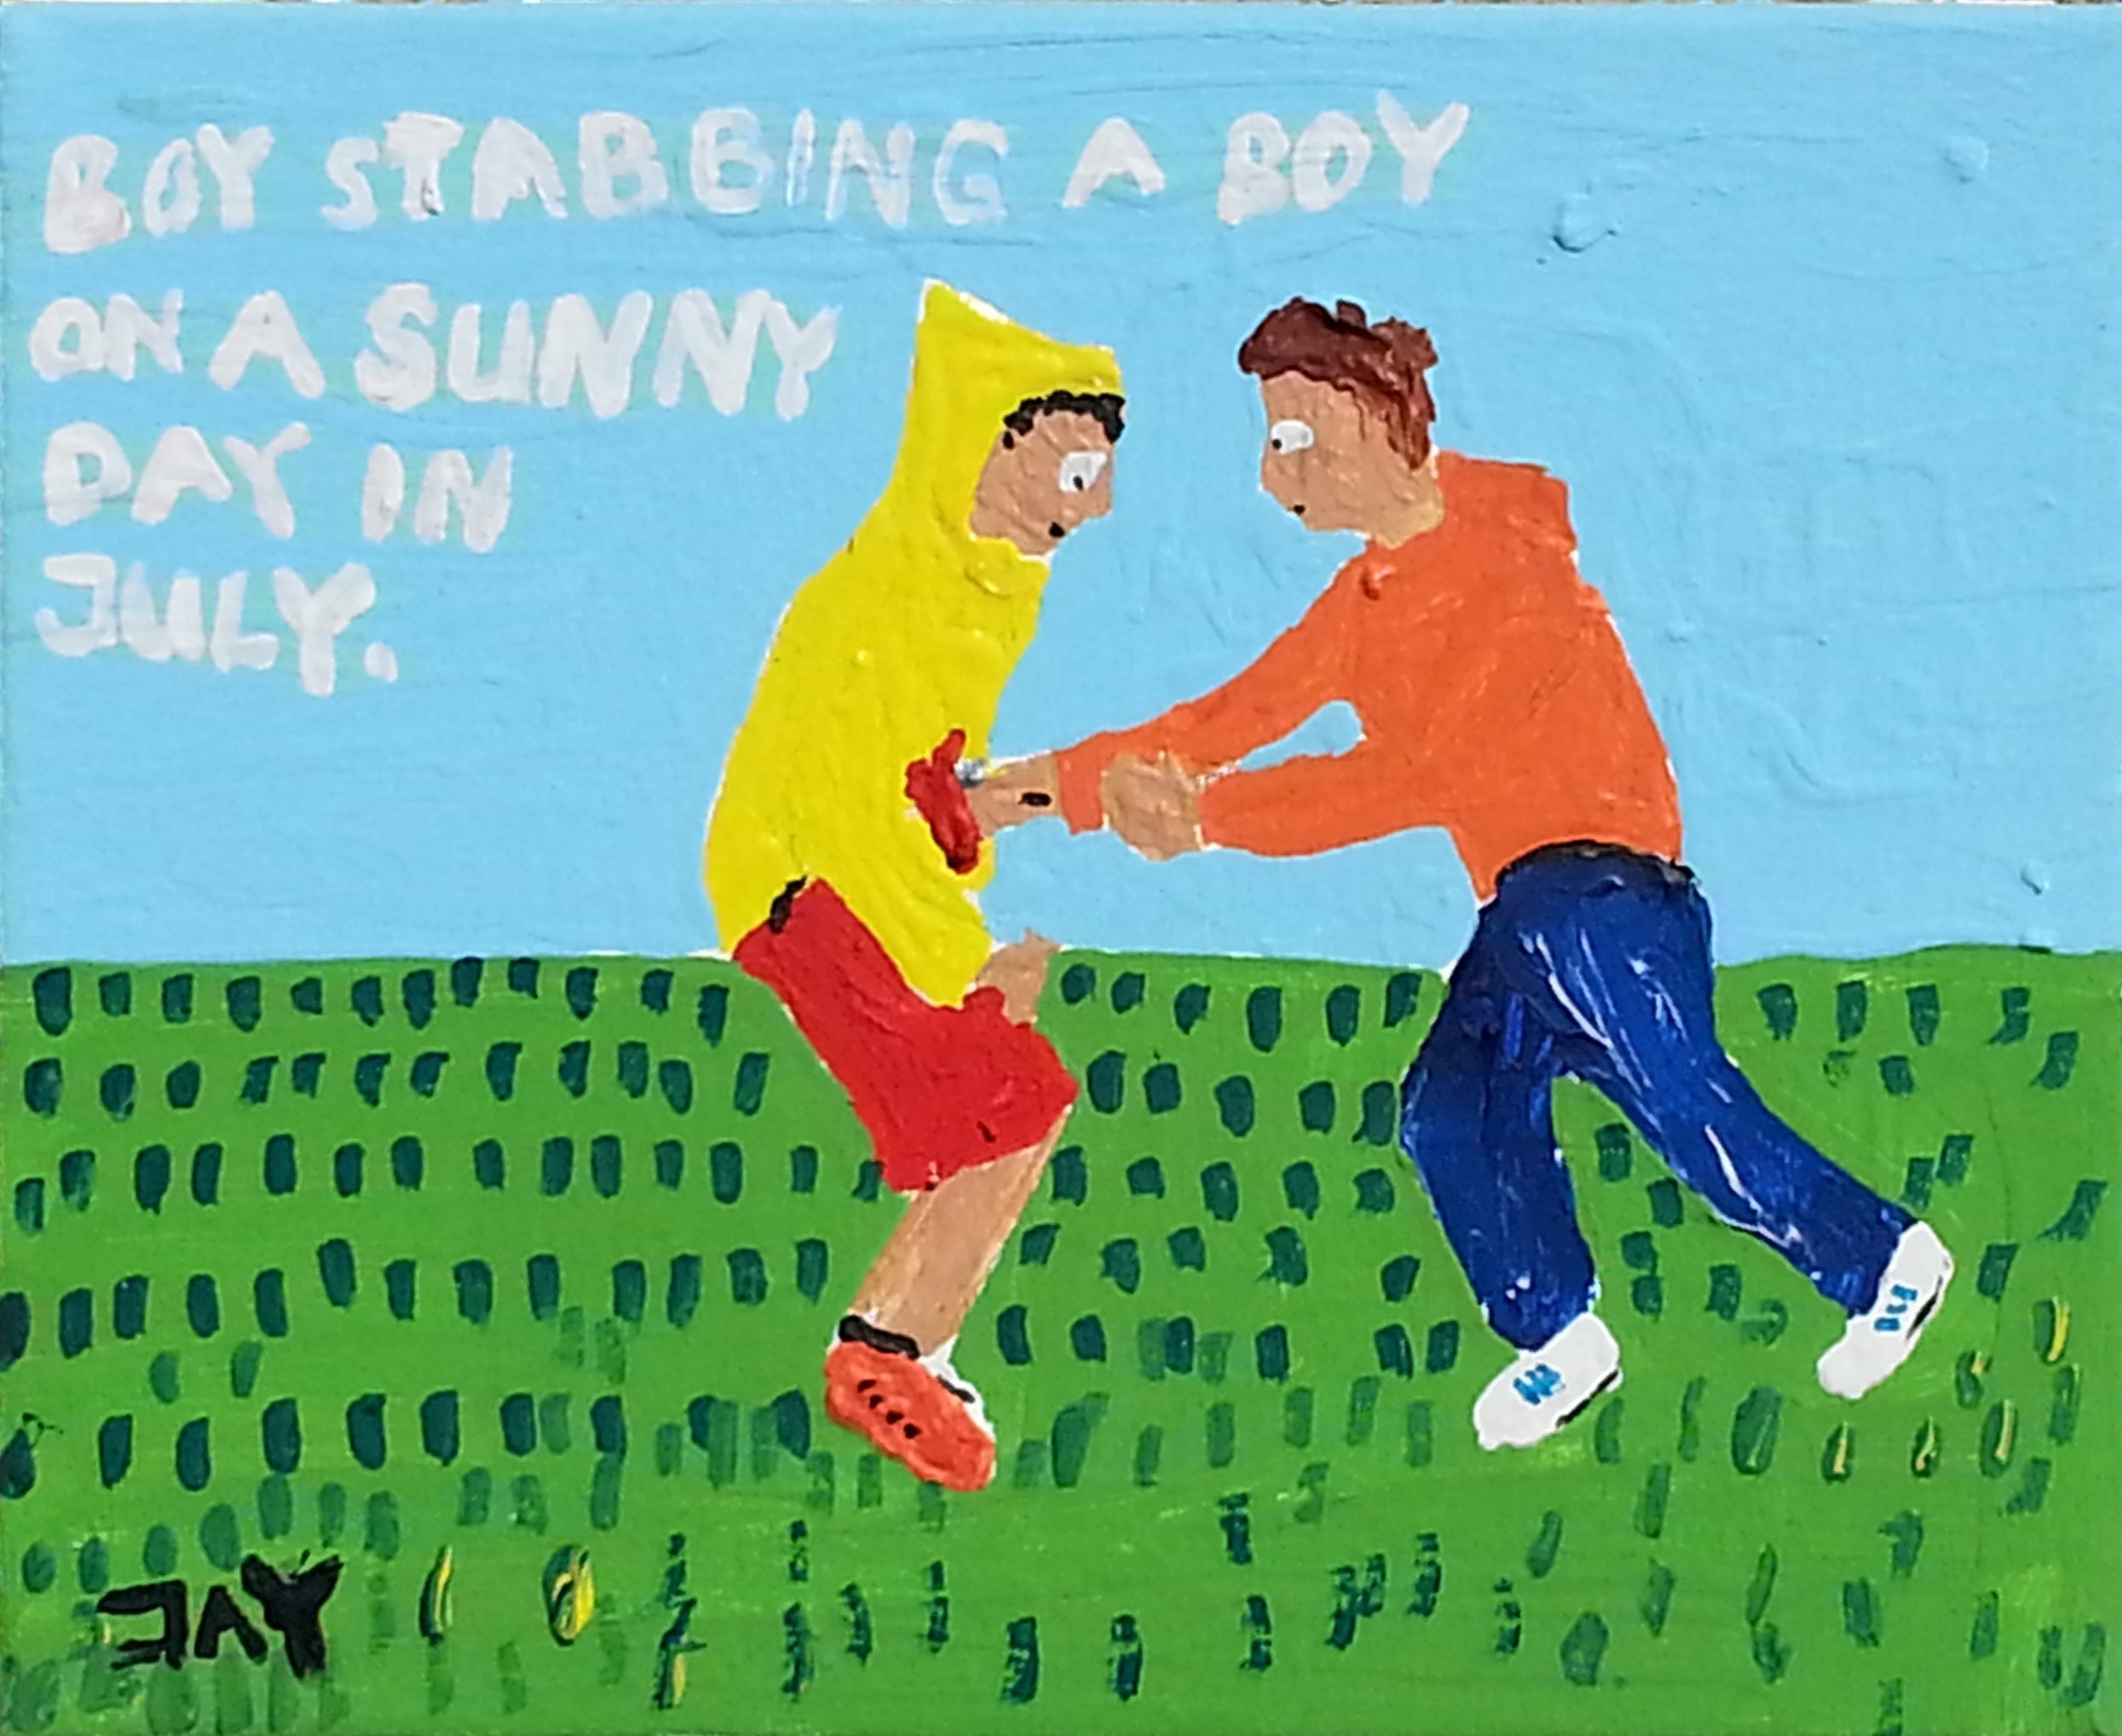 Bad Painting number 05: Boy stabbing a boy on a sunny day in July, Pintura Acrílico Figura Humana original por Jay Rechsteiner